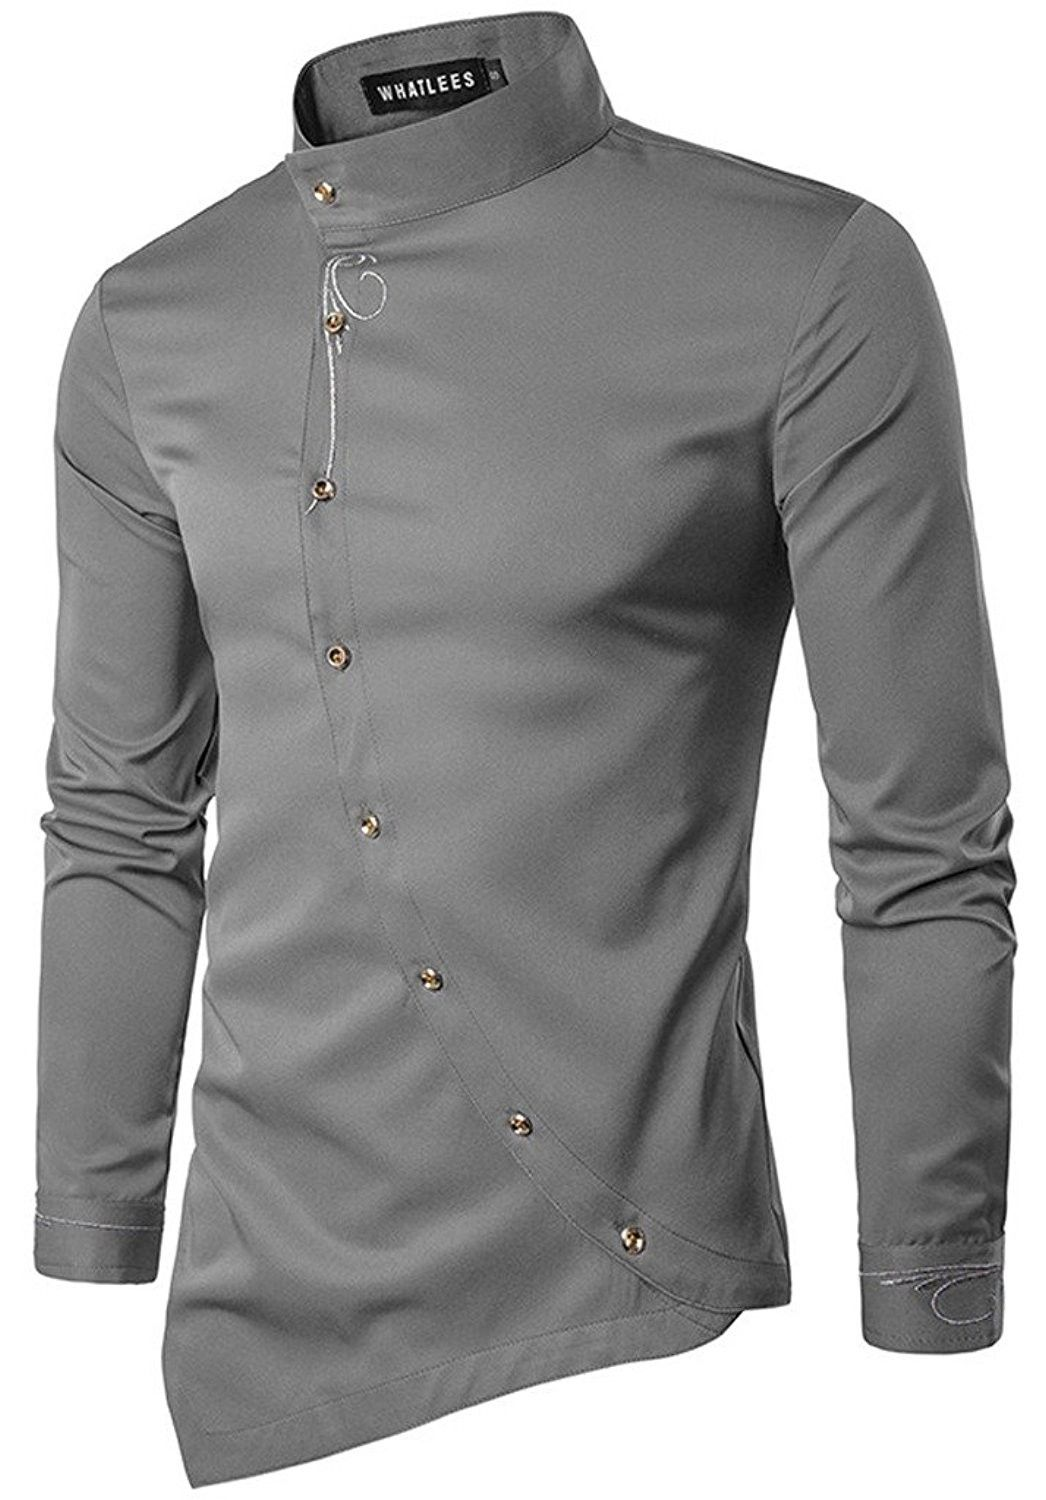 YYear Mens Stylish Stand Collar Long Sleeve Irregular Hem Casual Dress Work Shirt